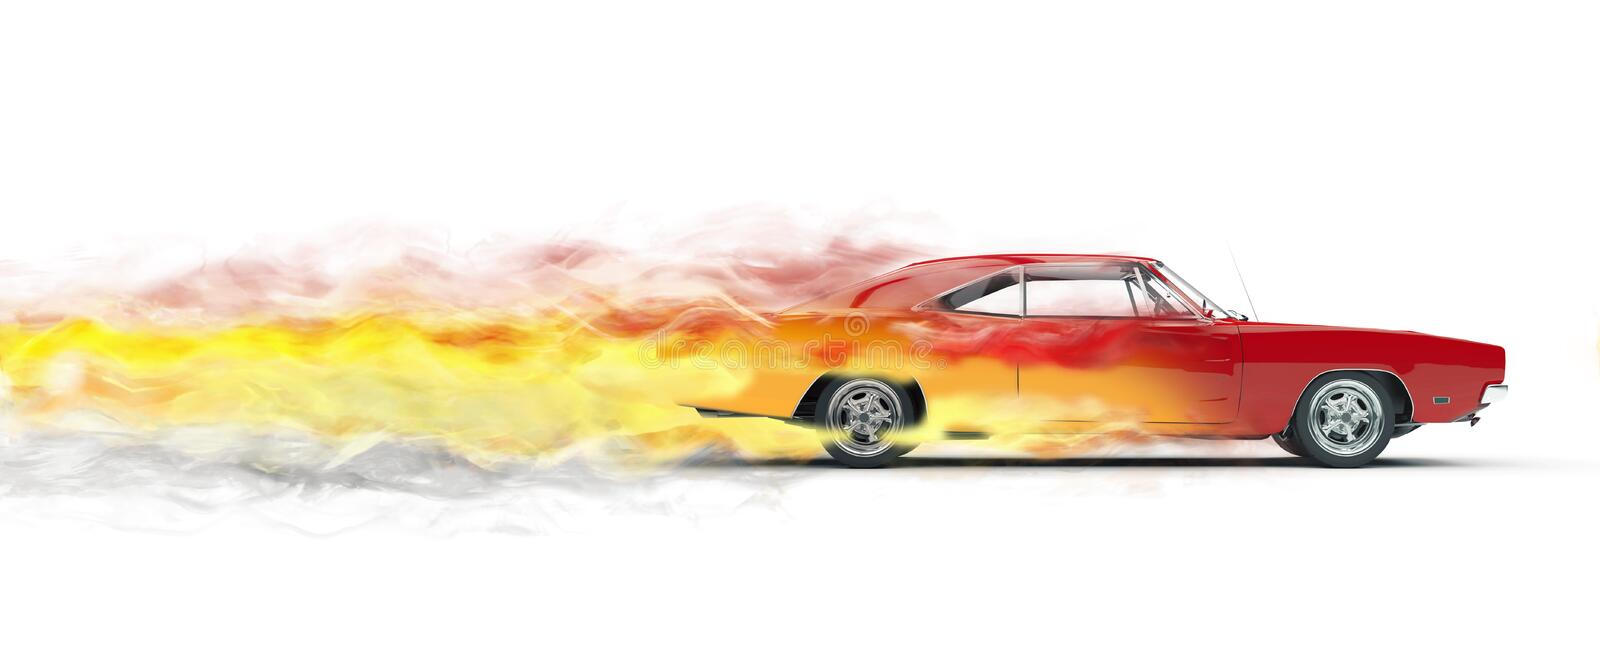 Red vintage muscle car - smoke trails royalty free illustration